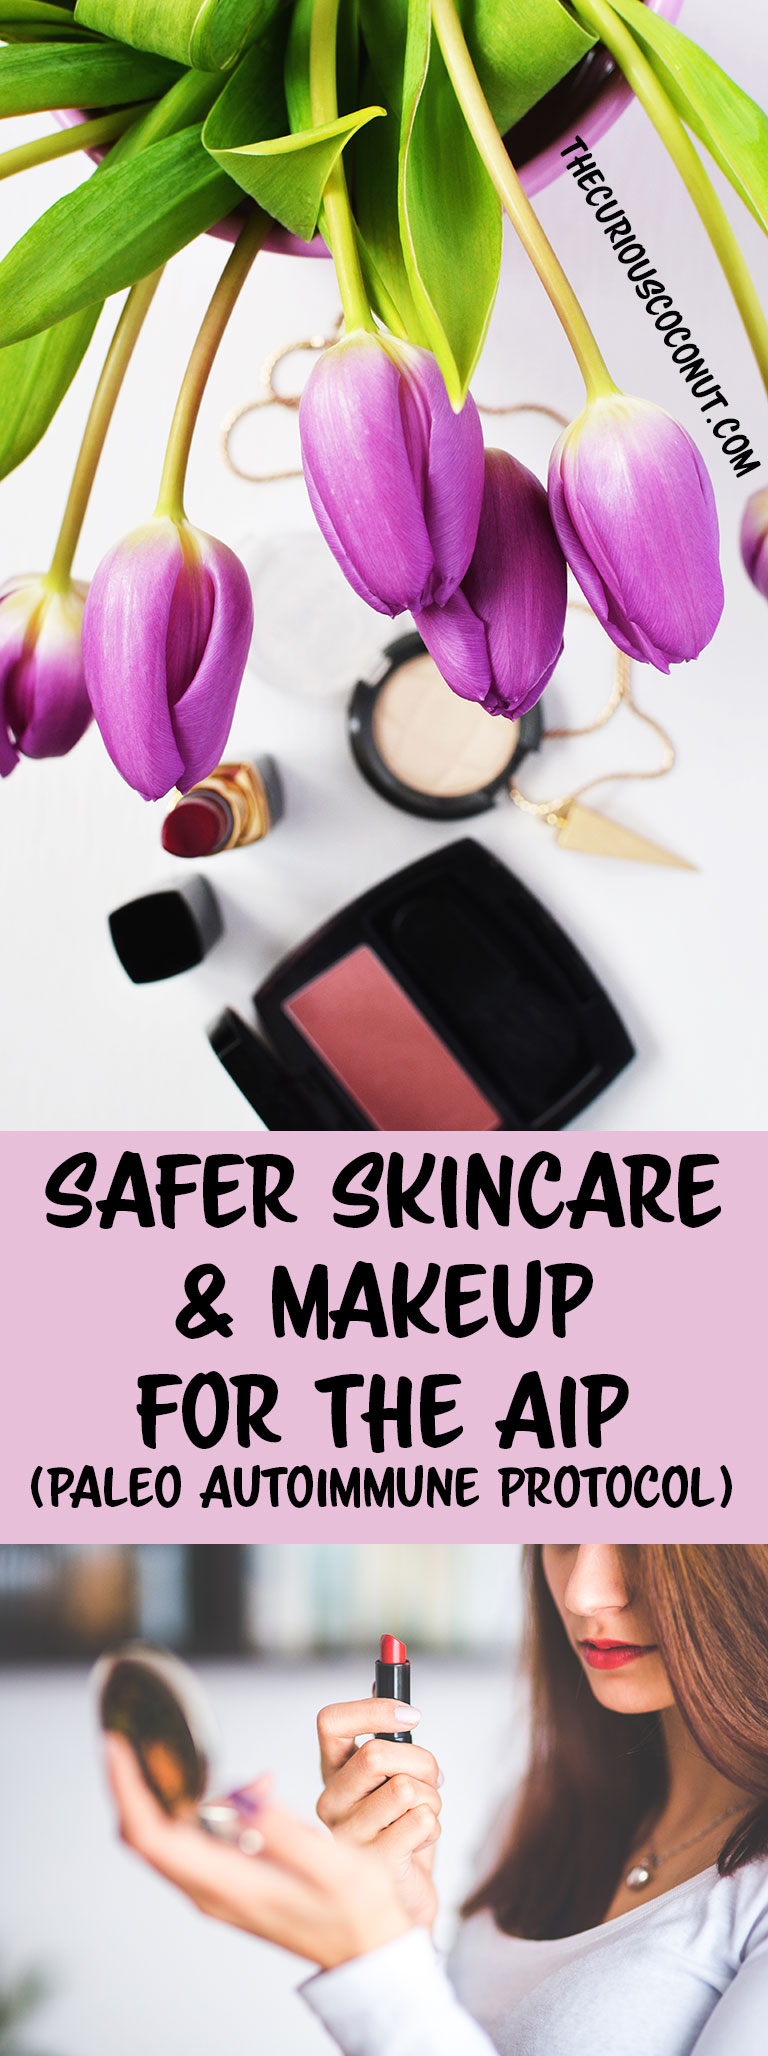 Safer Skincare and Makeup for the #AIP - my top picks!  // TheCuriousCoconut.com